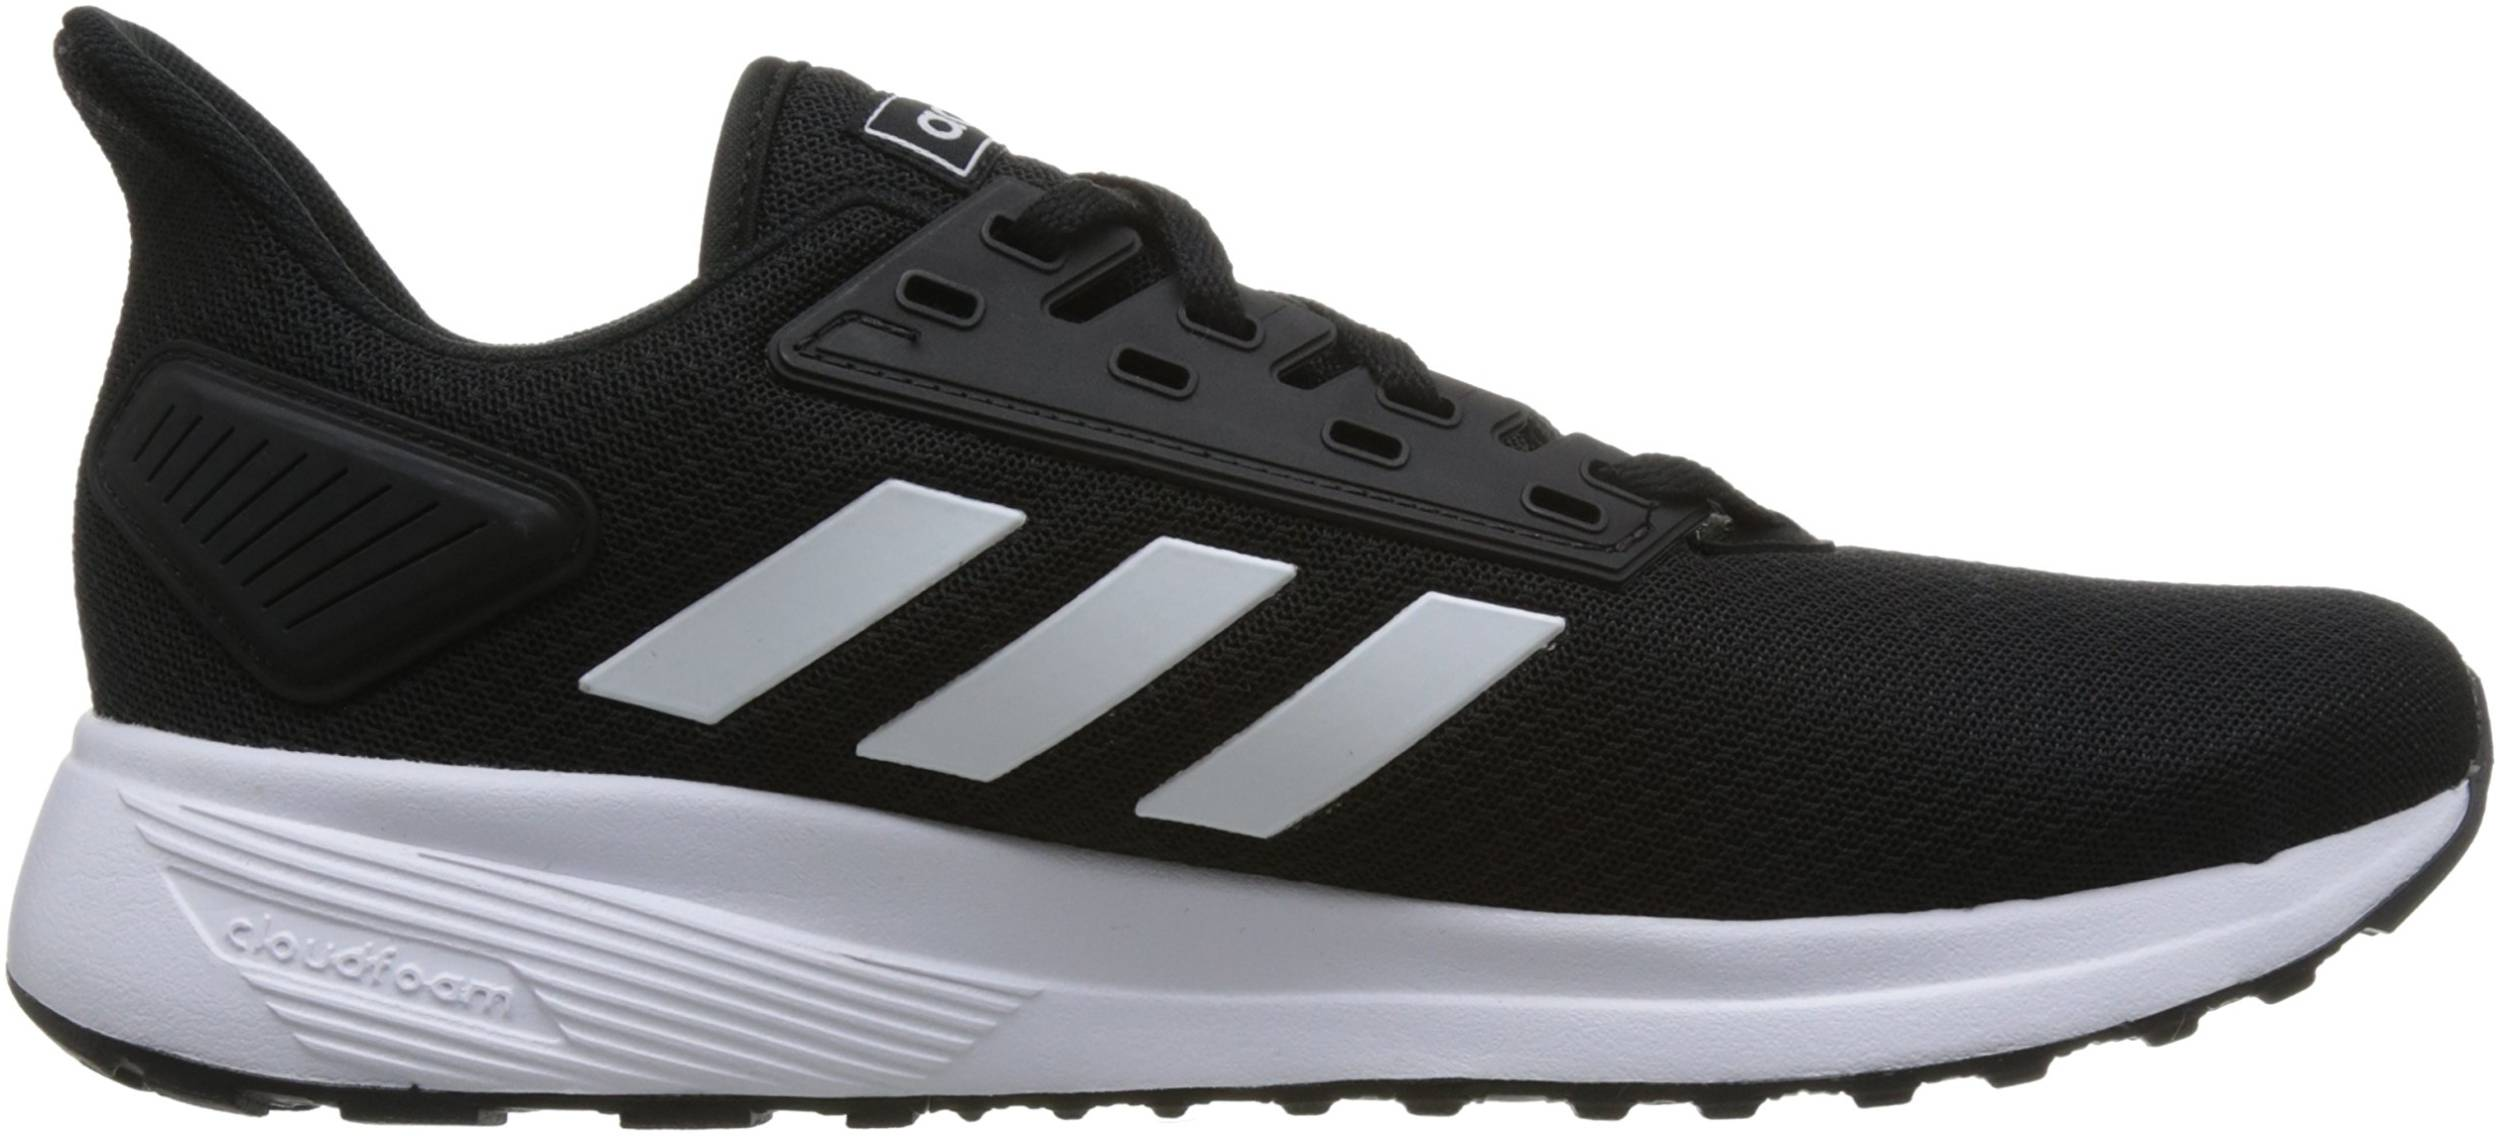 Condición grieta Cuestiones diplomáticas  Adidas Duramo 9 - Deals ($45), Facts, Reviews (2021) | RunRepeat